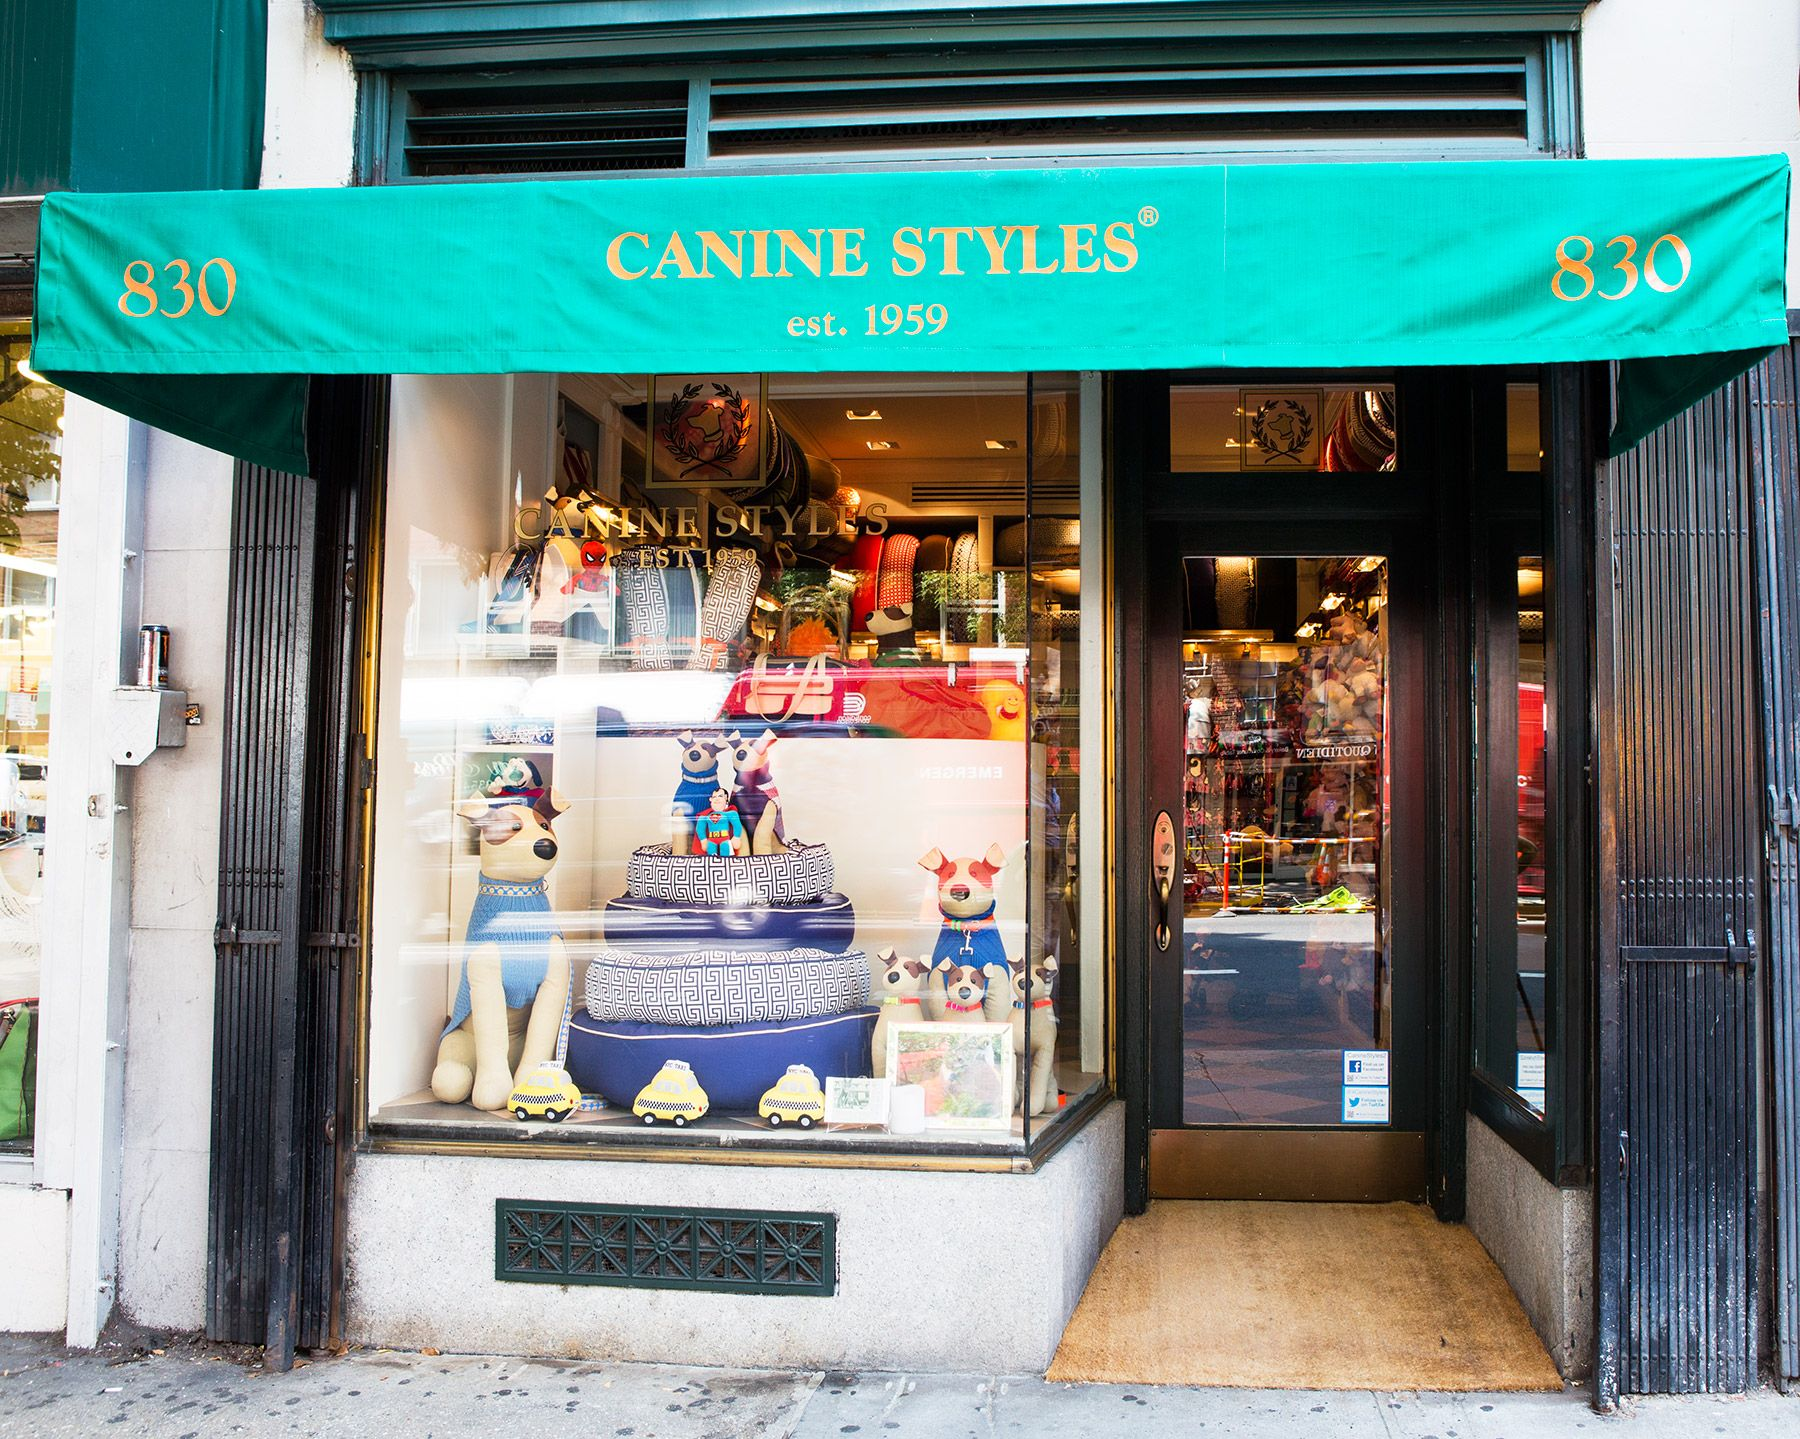 Canine Styles A Lifestyle For Dogs Dog Boutique Ideas Pet Store Display Pet Store